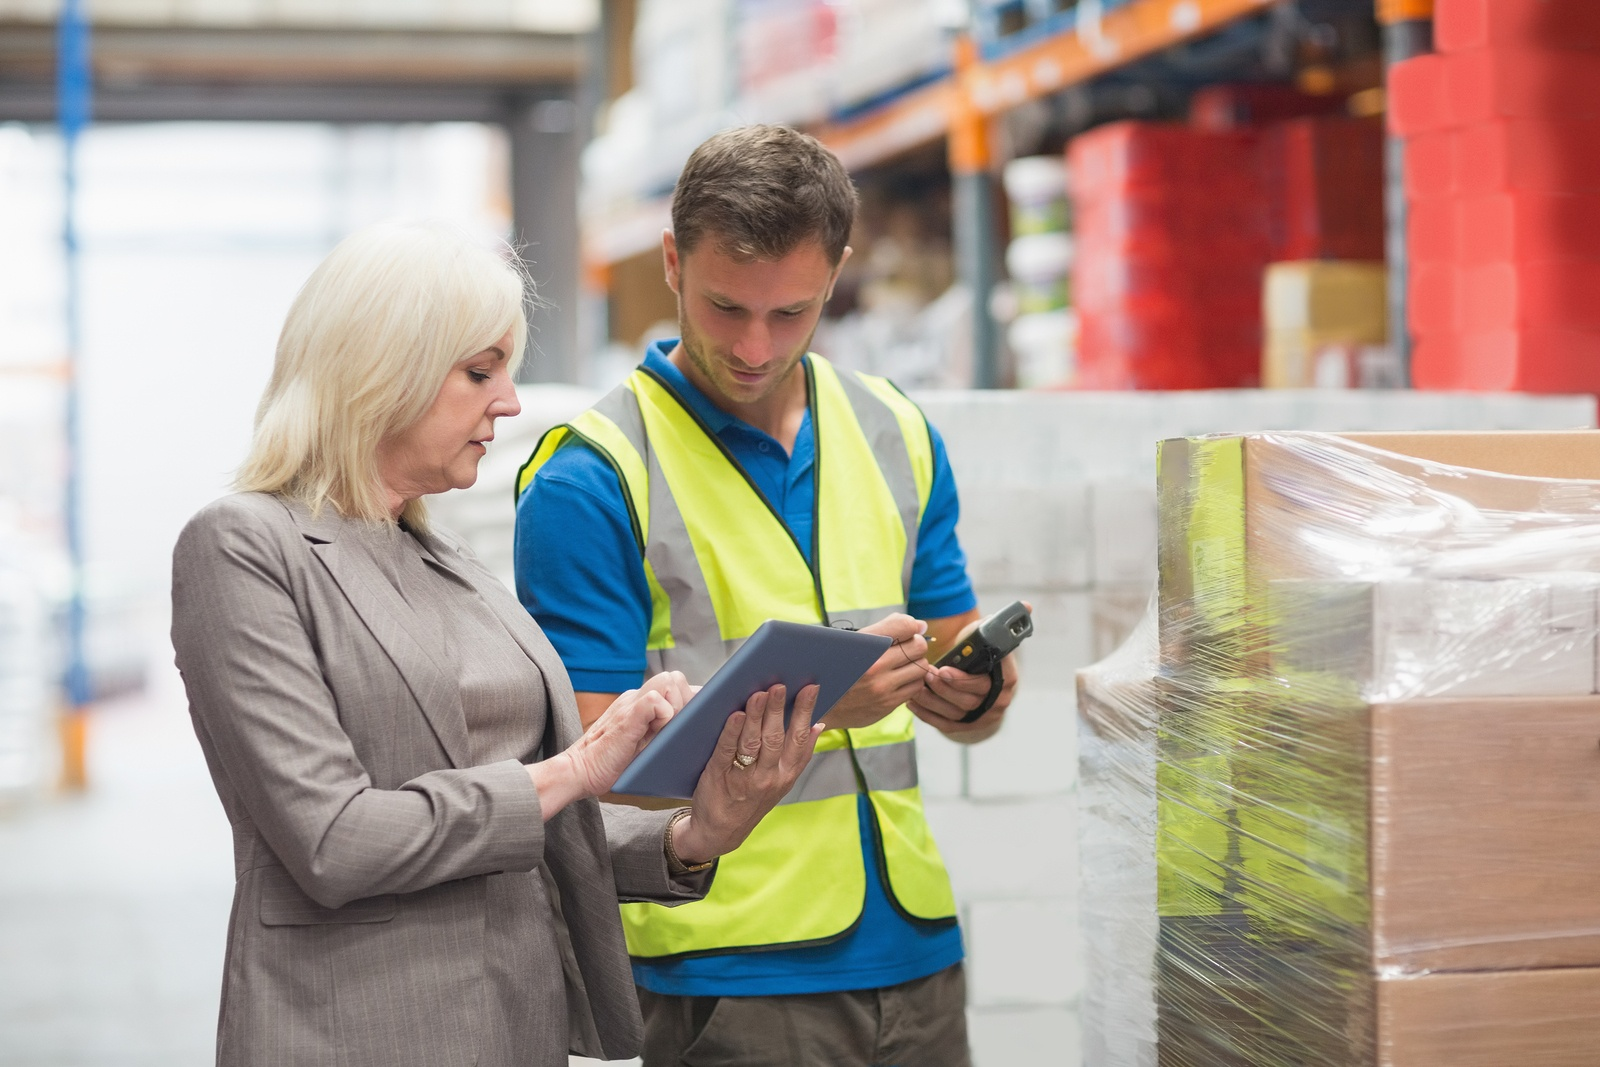 manager and employee in a warehouse